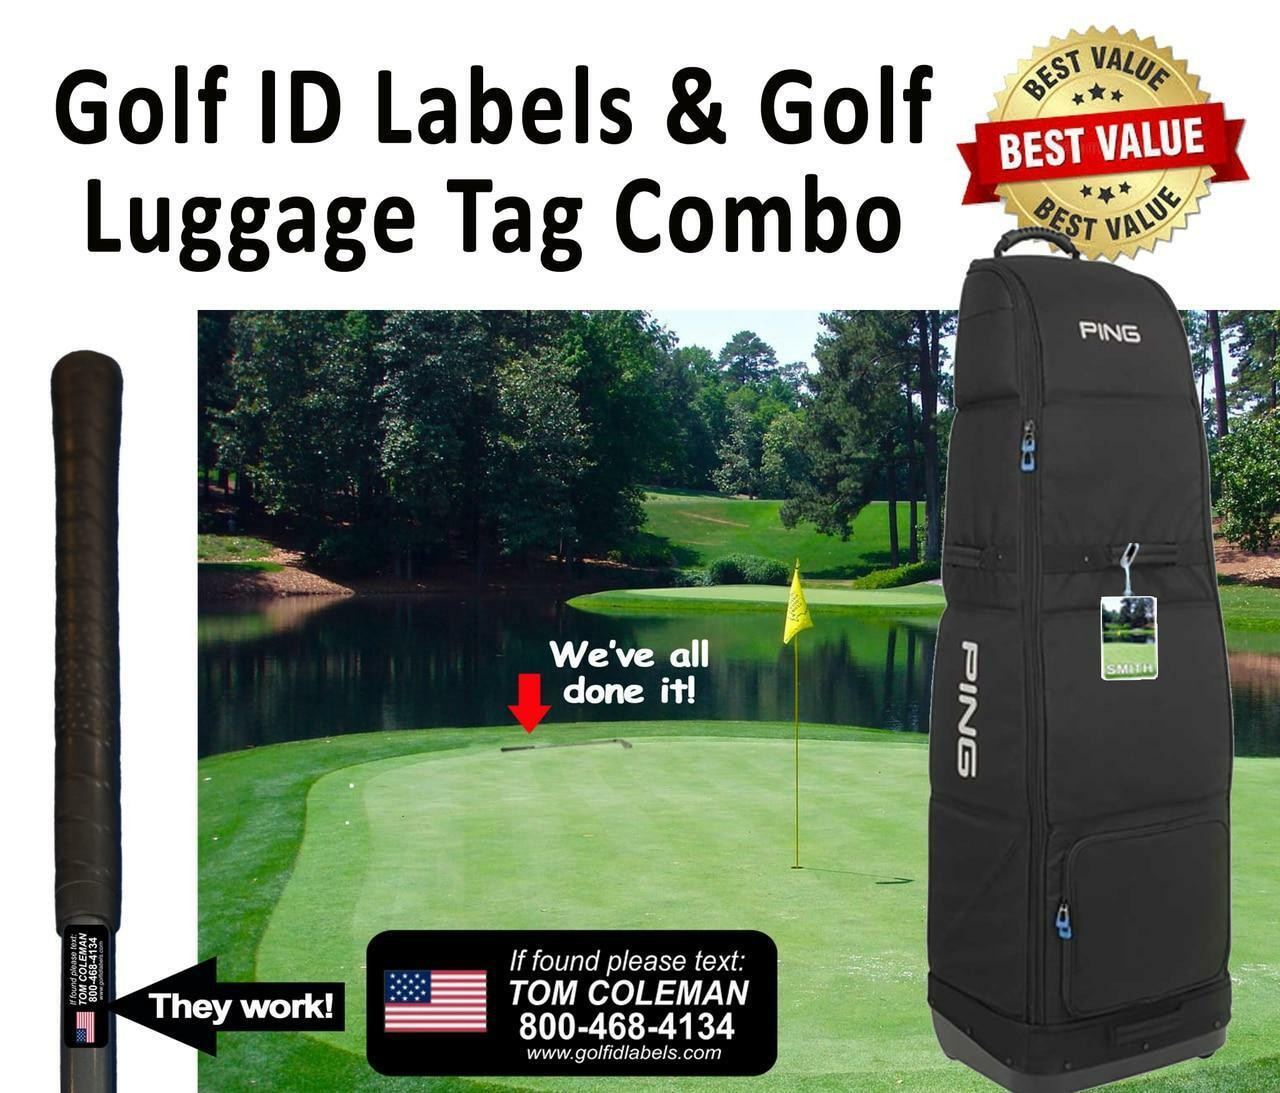 Golf ID Label Combo Includes Sets of 14 Golf ID Decals, 1 Personalized Bag Tag and 1 Golf Target